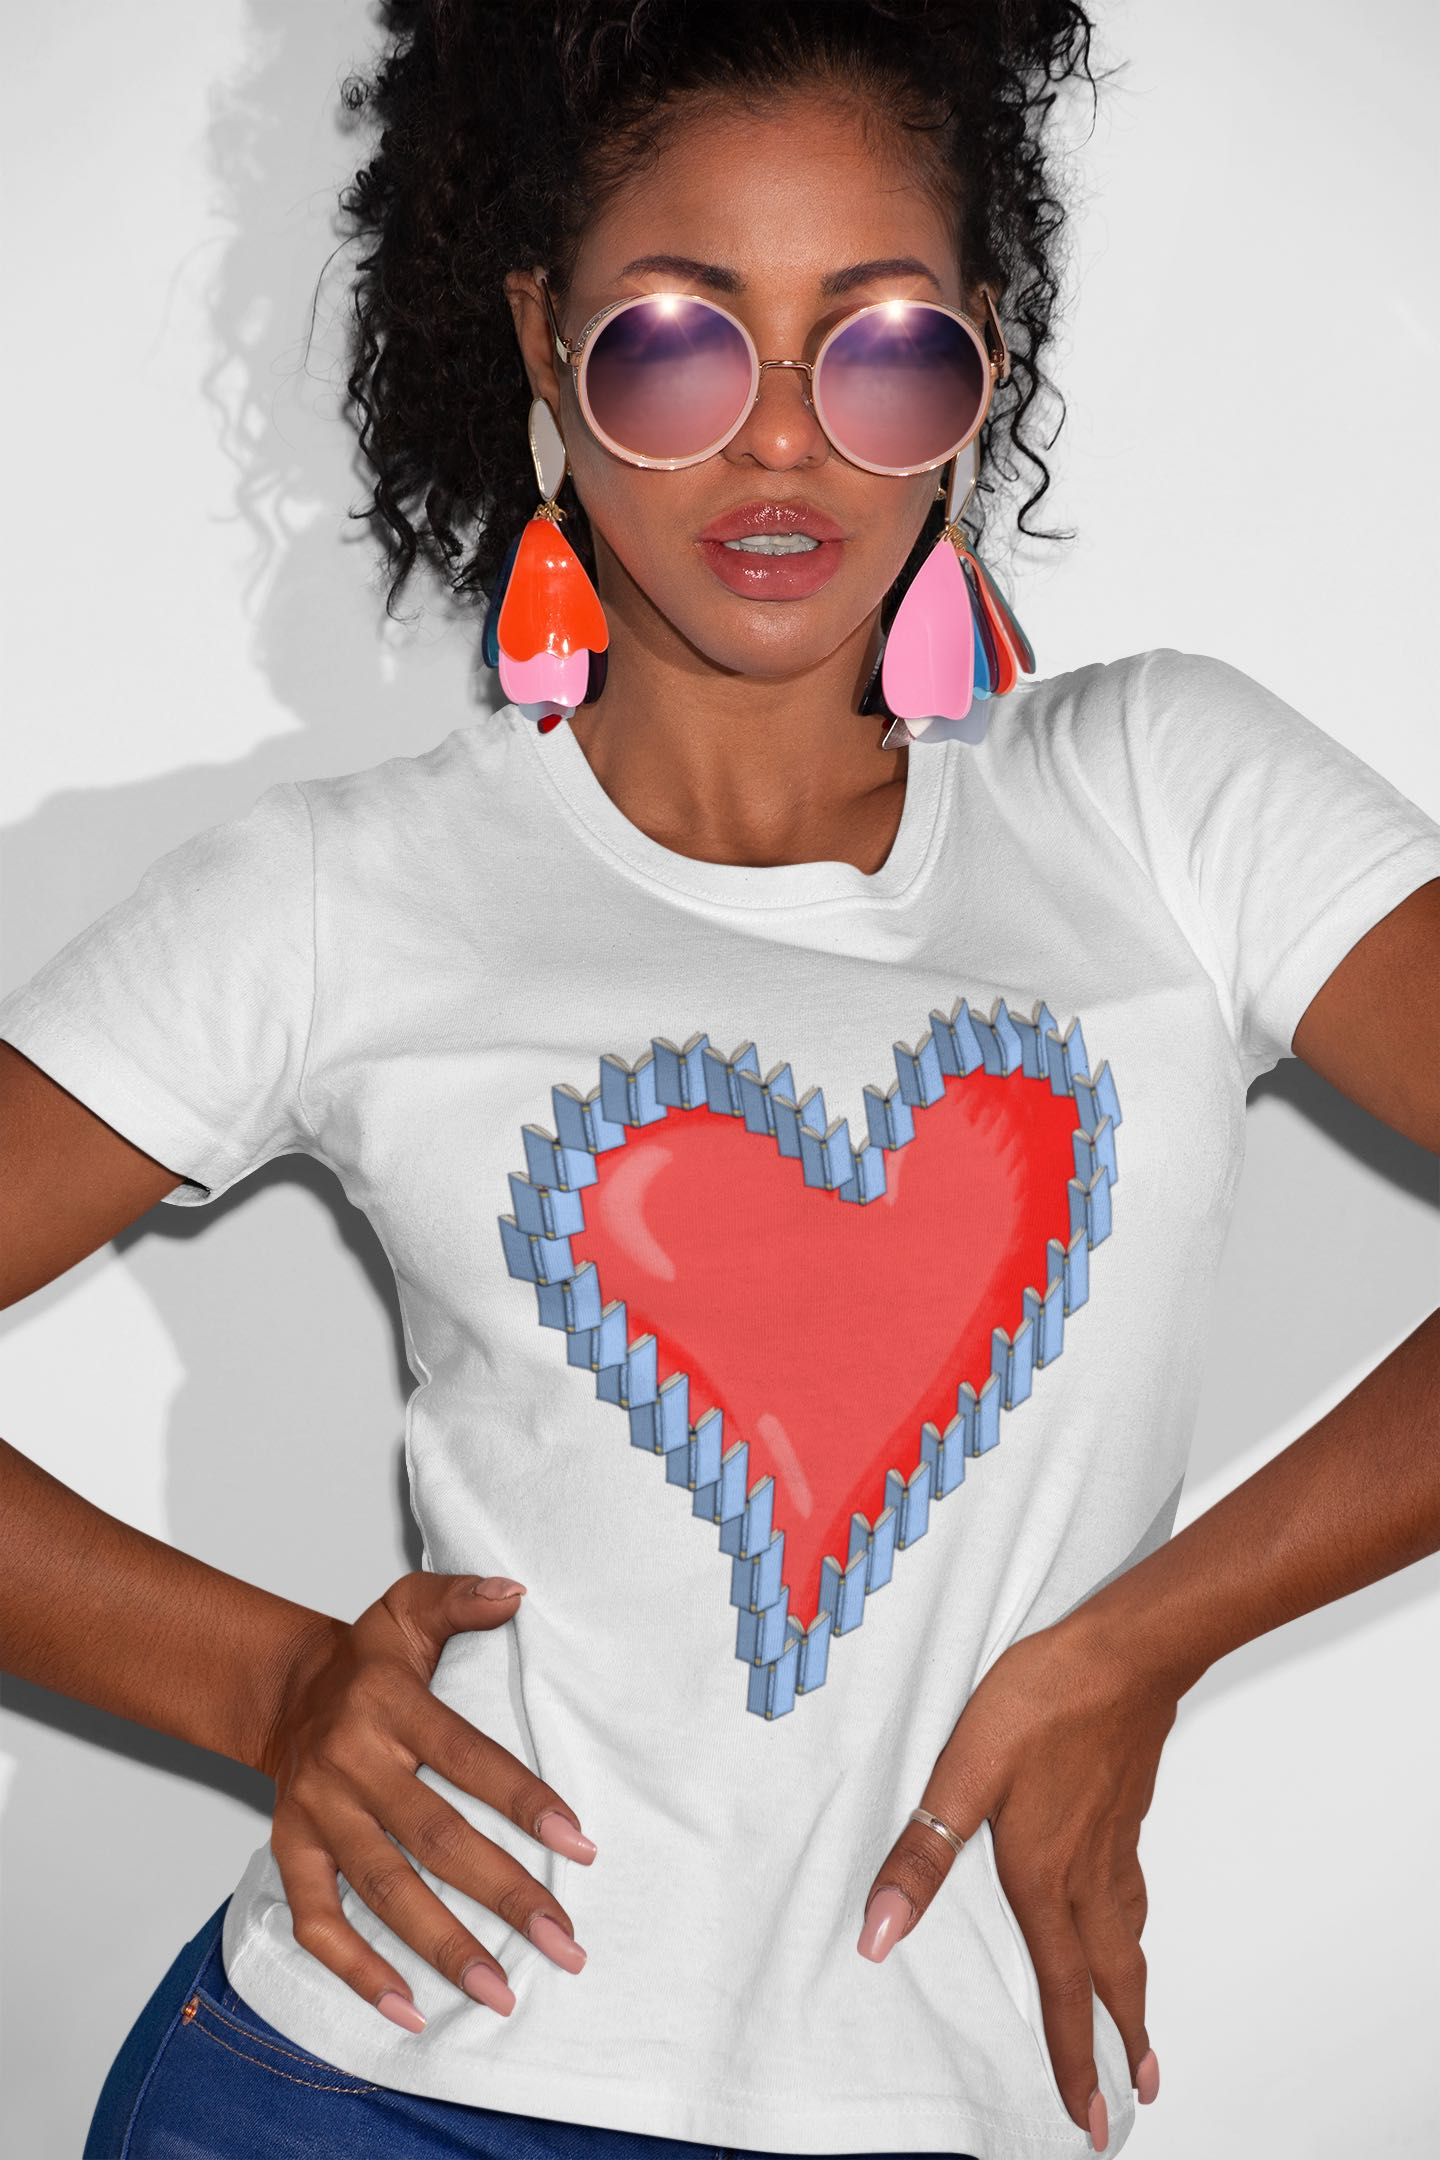 womens t-shirt with heart and books